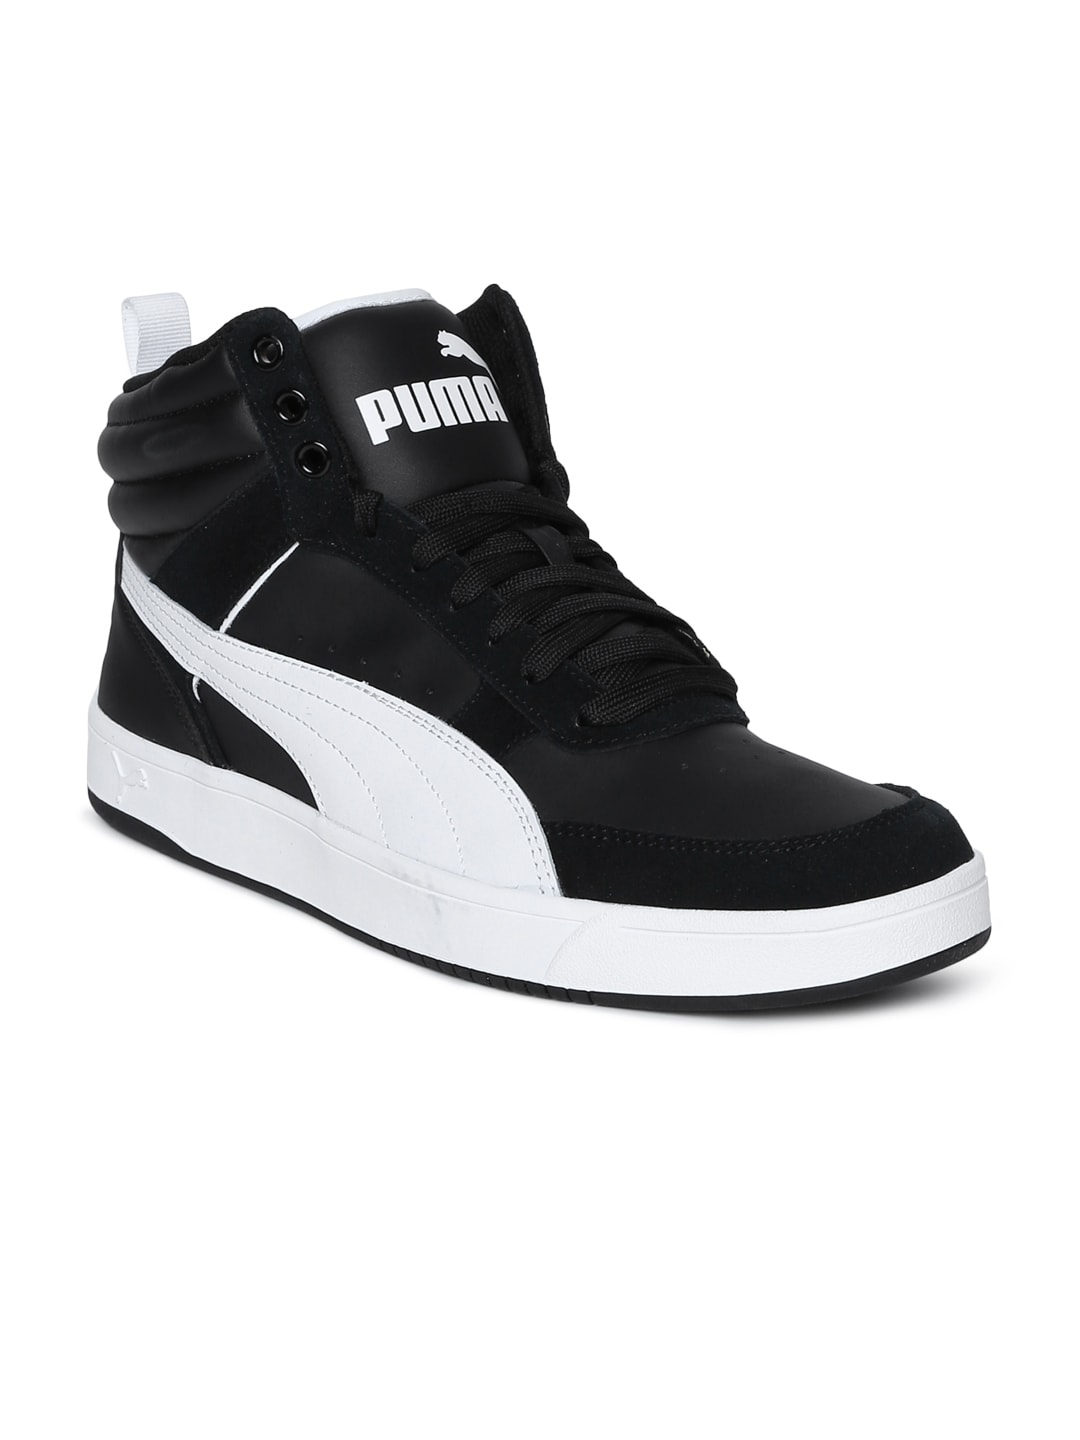 863892b2eef Puma Rebound Shoes - Buy Puma Rebound Shoes online in India